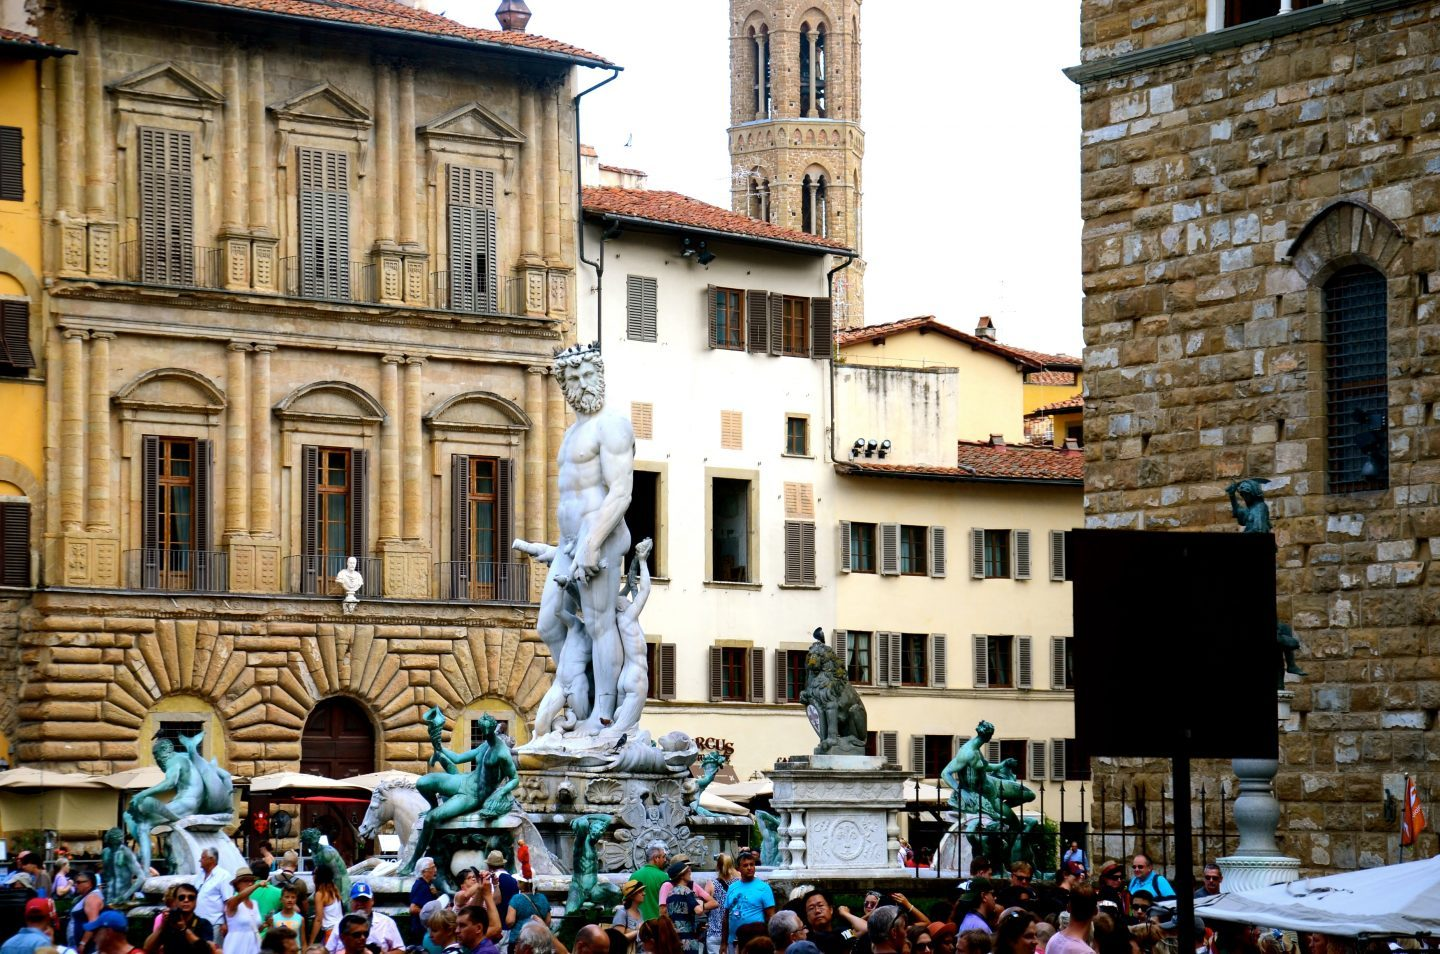 Statues all around in the piazza della Signoria in Florence Italy.